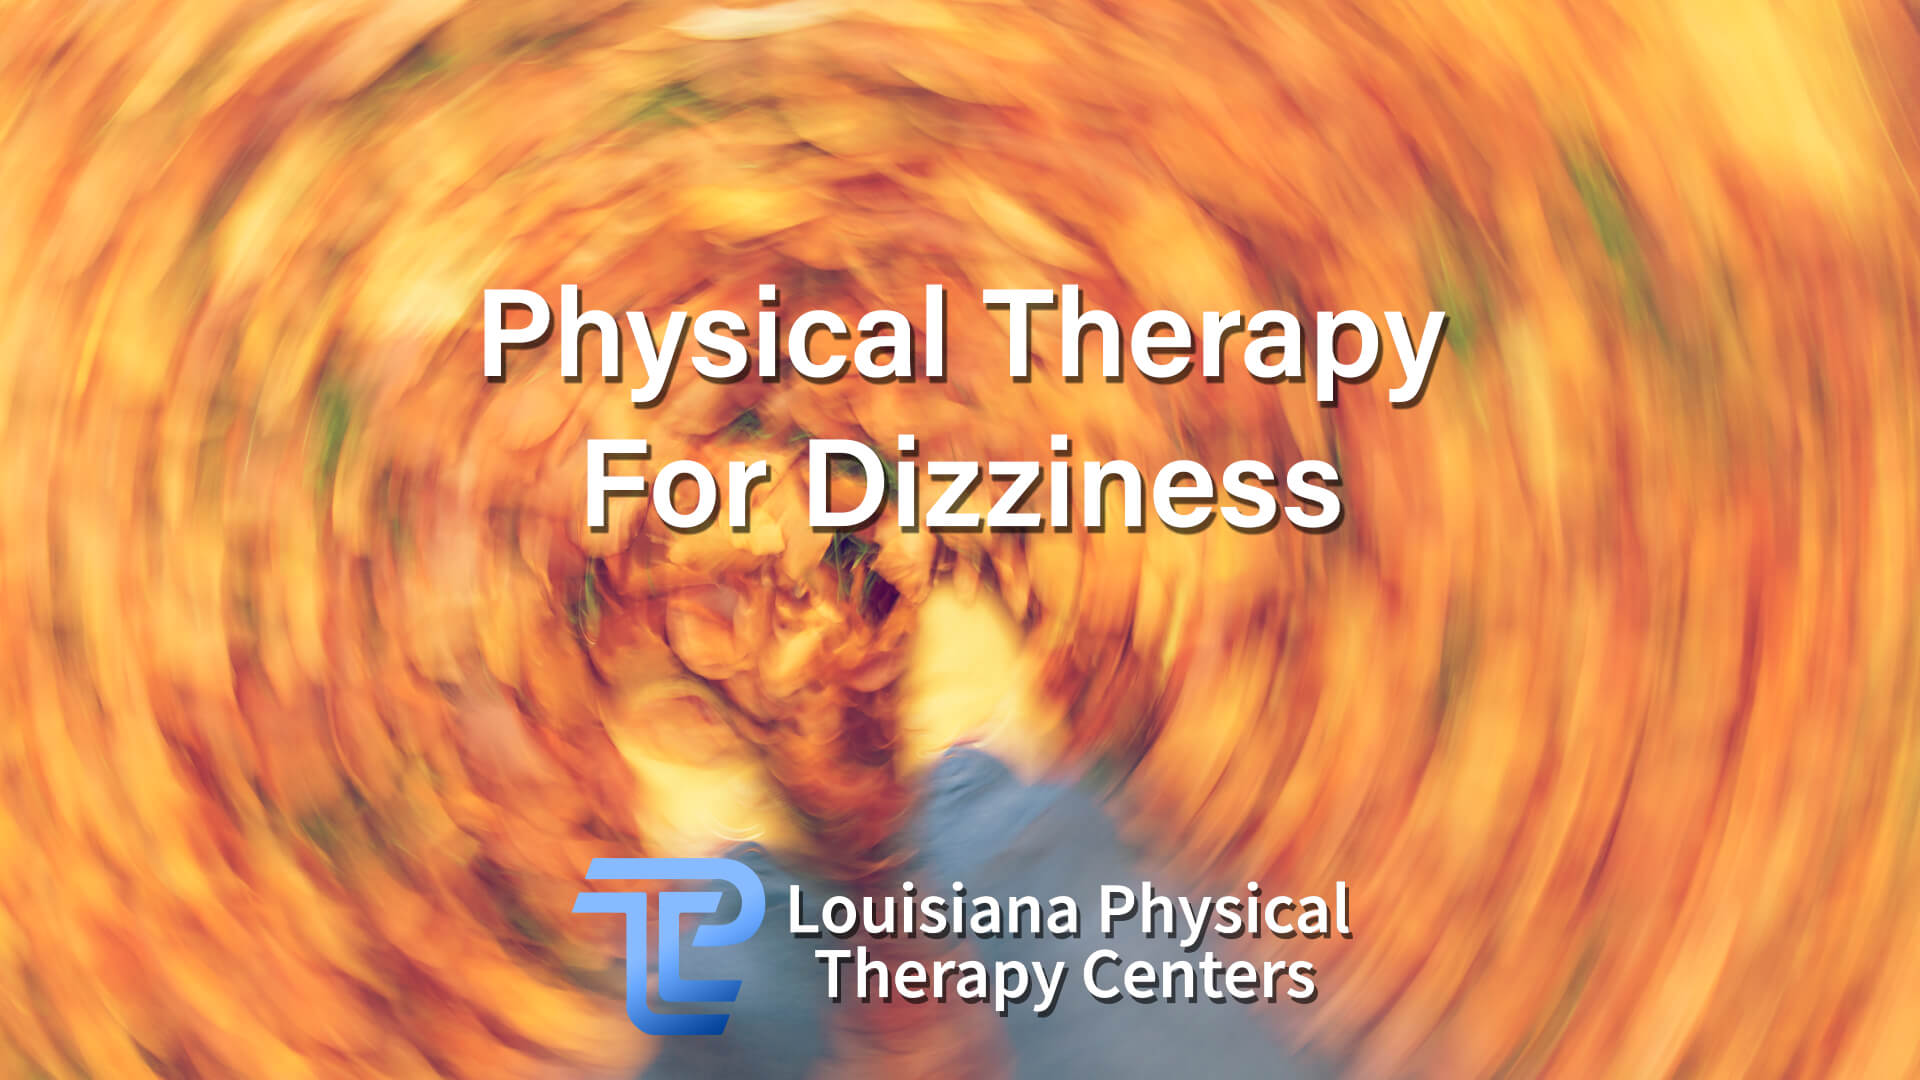 Physical Therapy For Dizziness